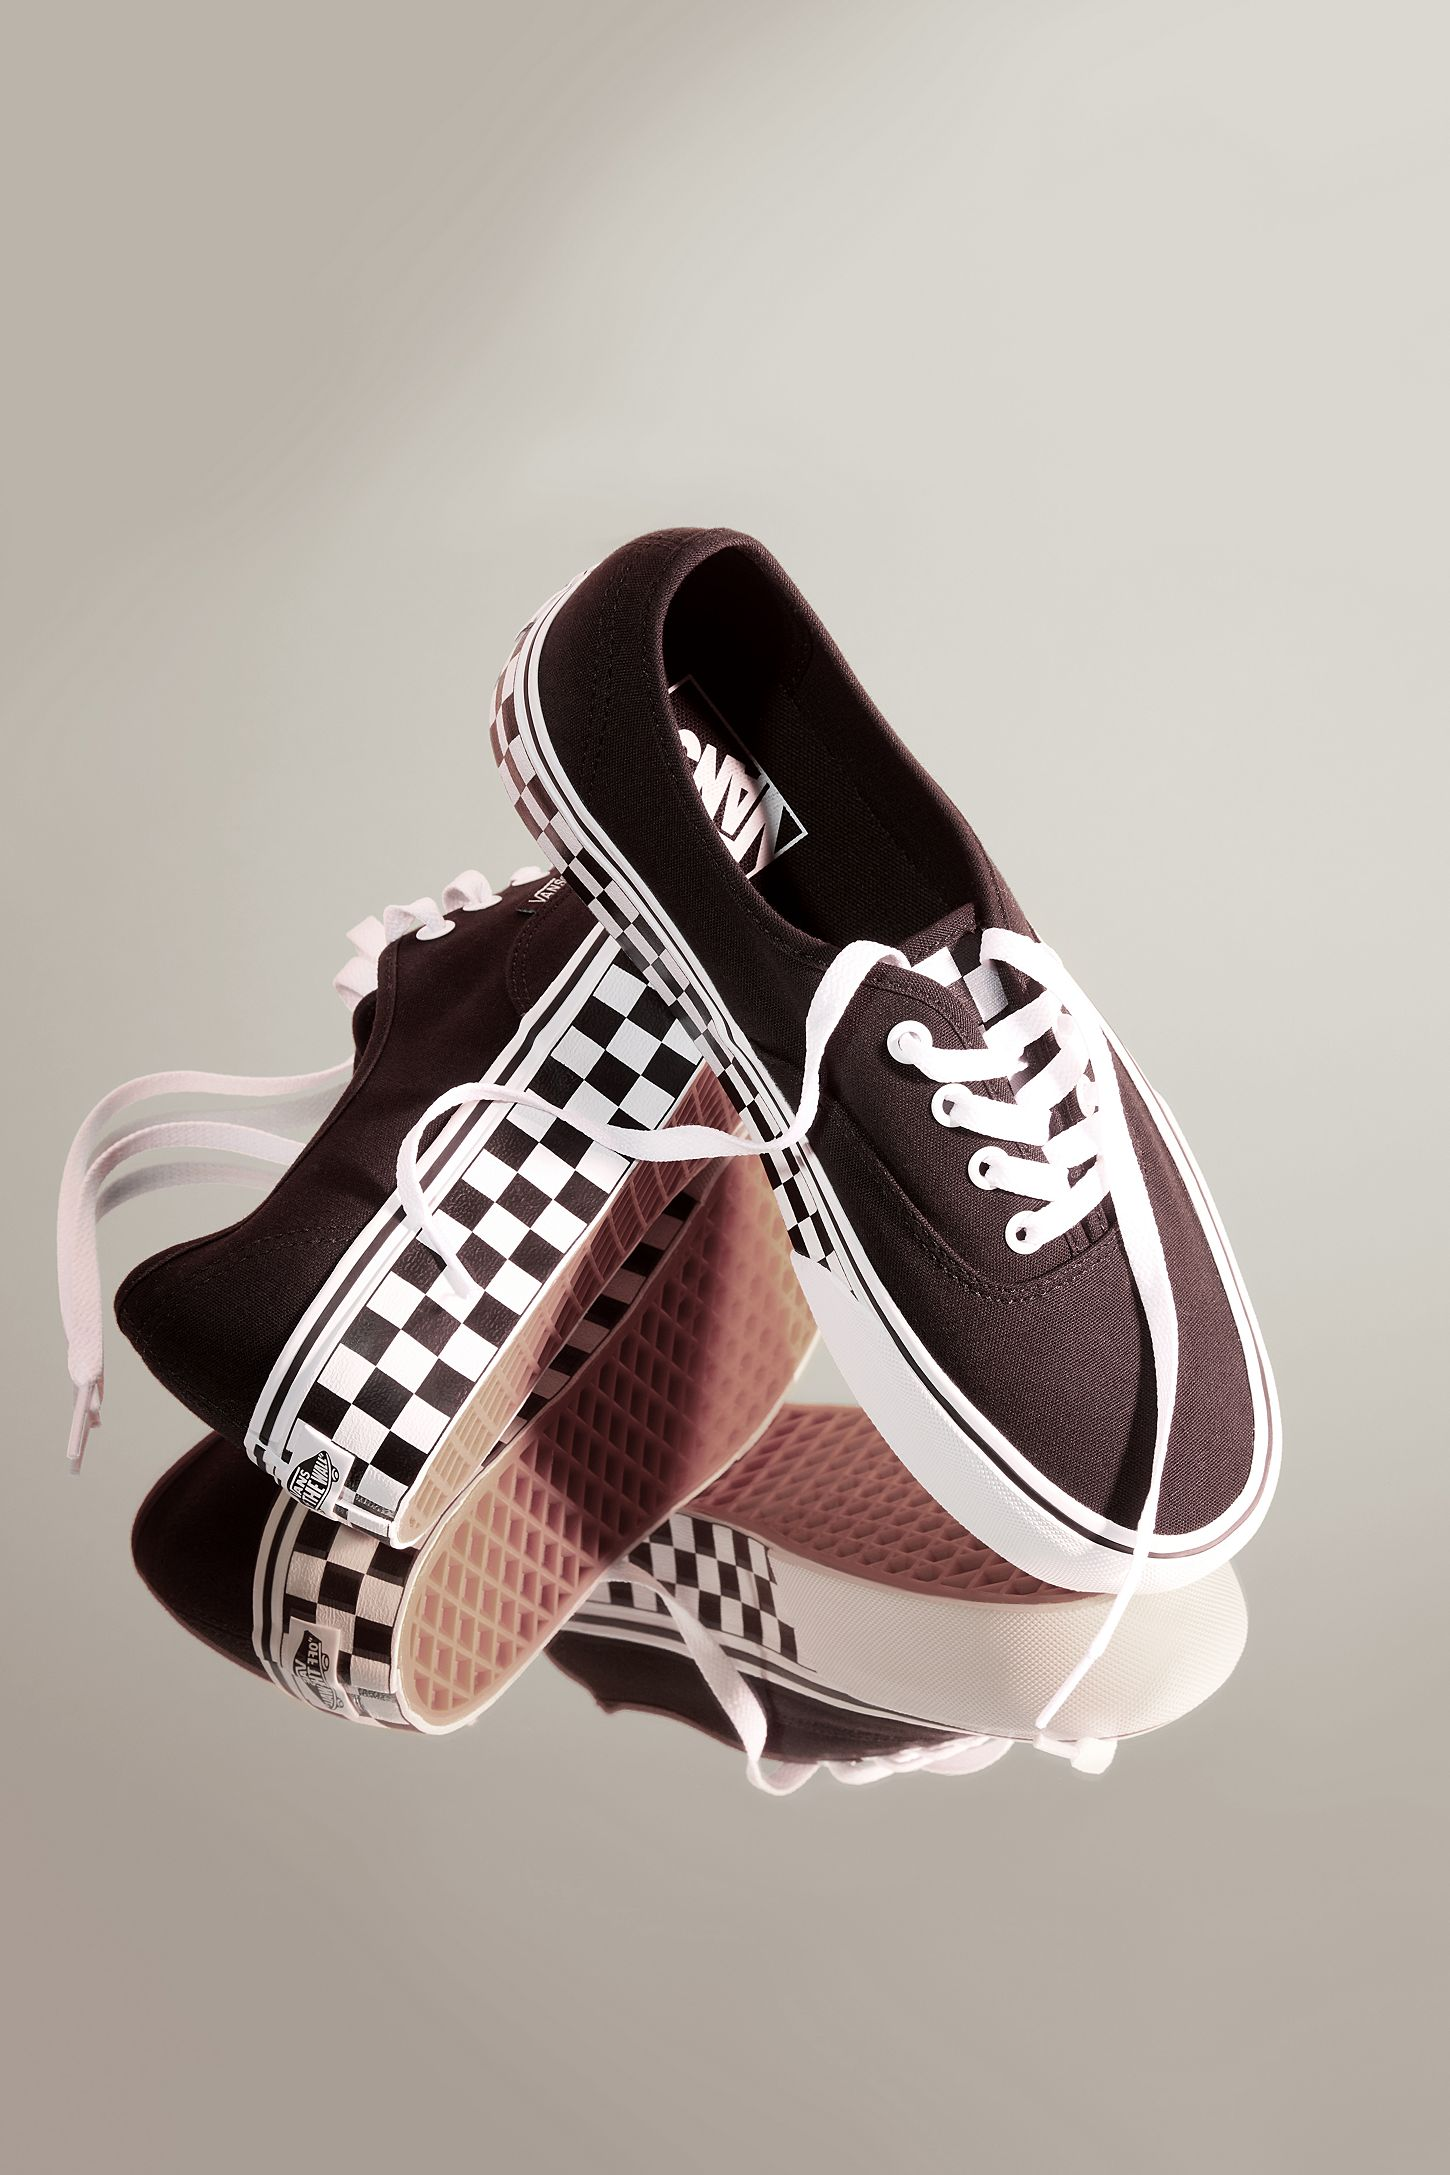 a2efb2e8618 Vans & UO Authentic Platform Sneaker   Urban Outfitters